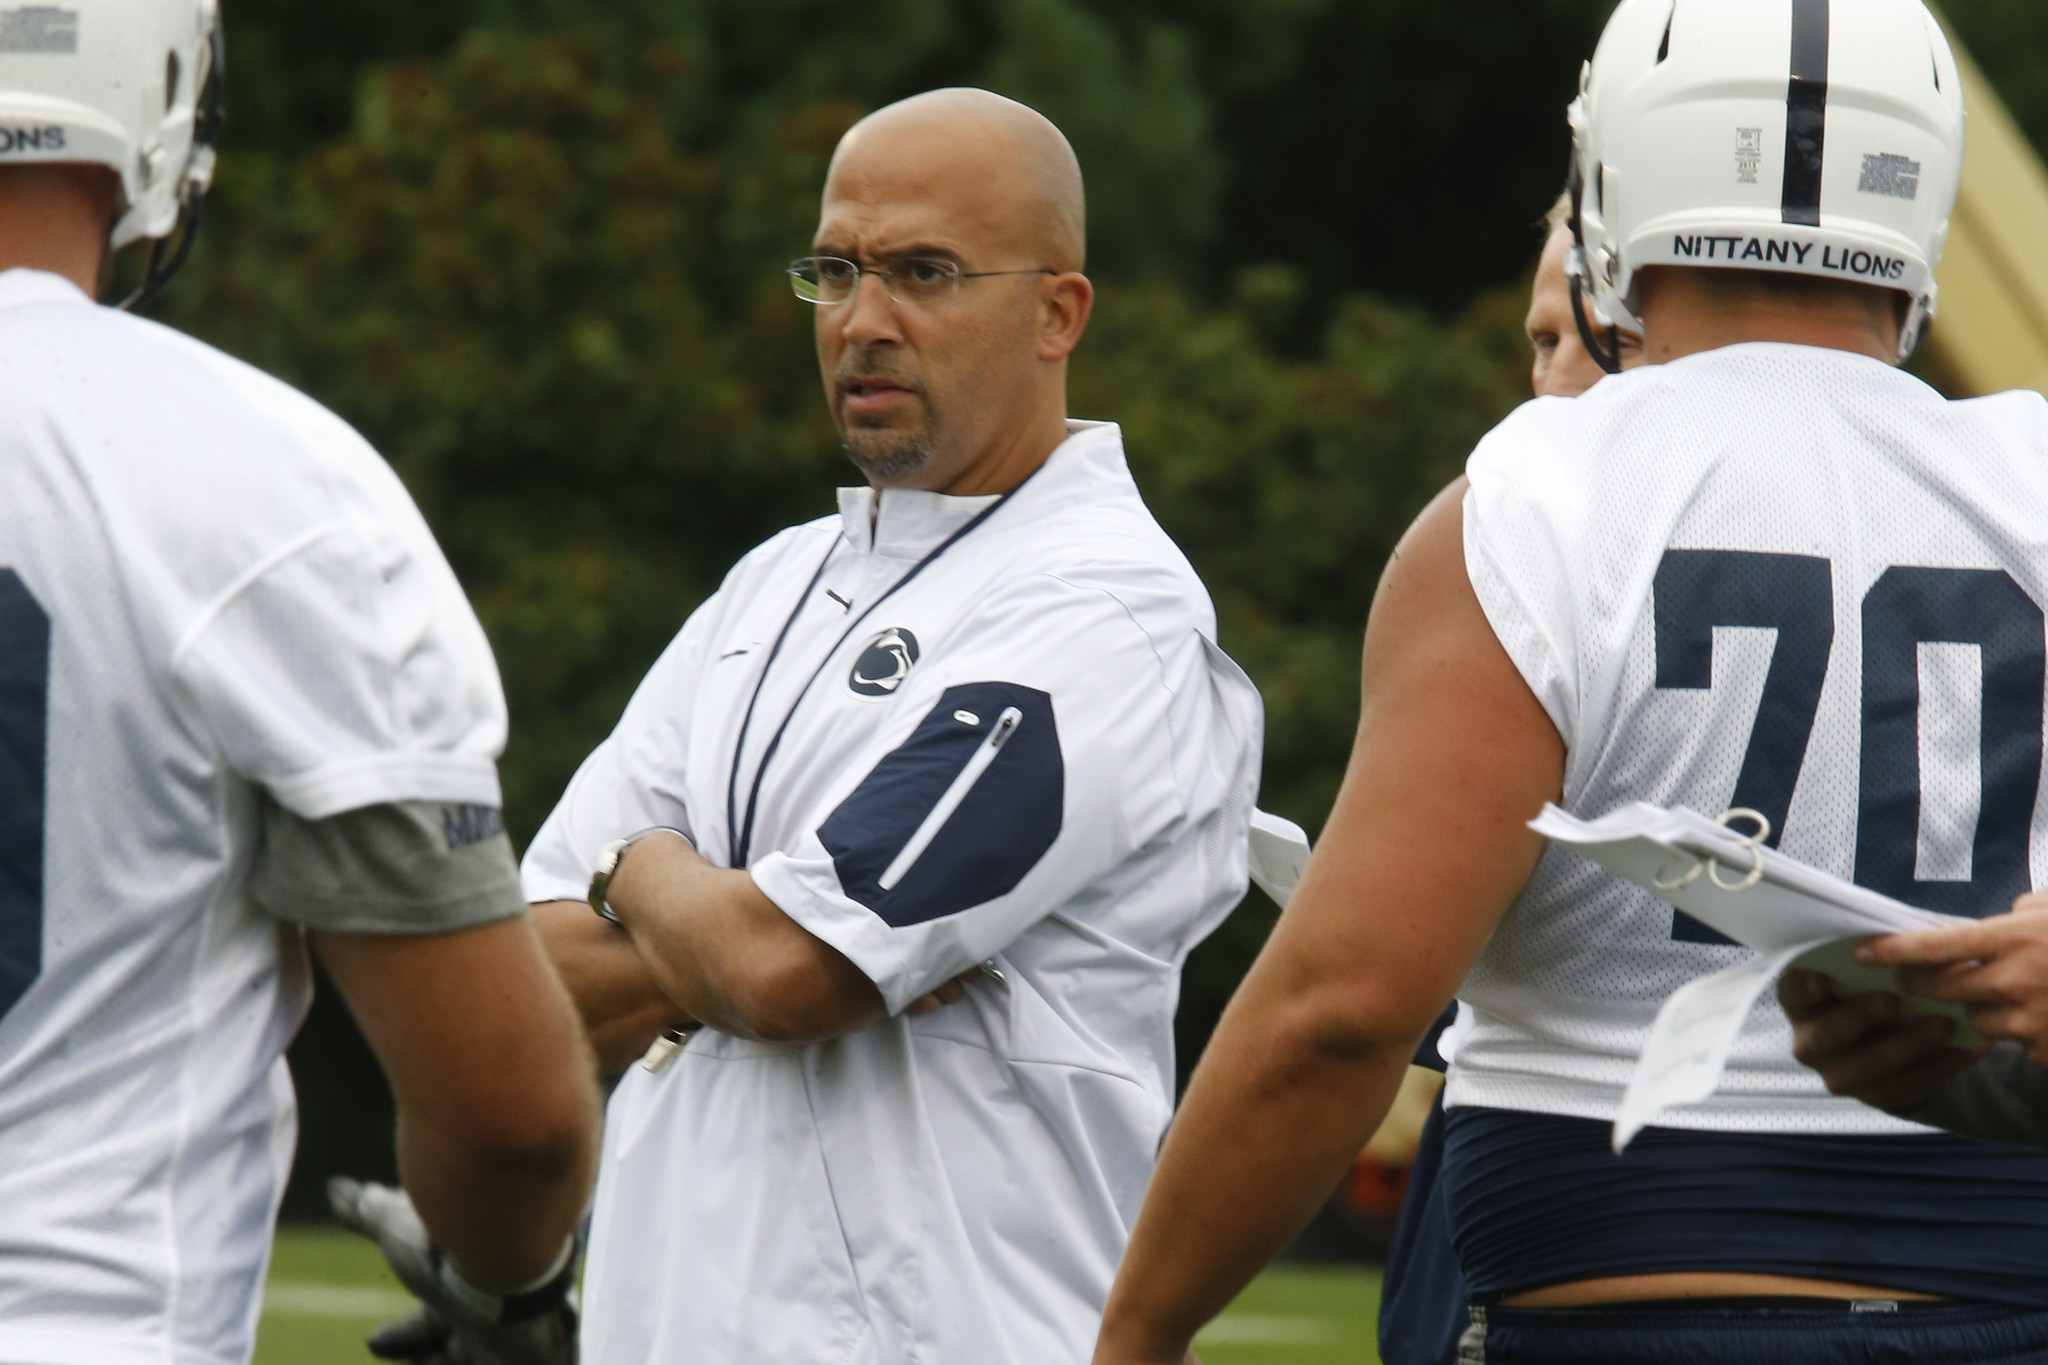 Mc-careful-with-those-rivalry-games-penn-state-coach-james-franklin-says-20160906